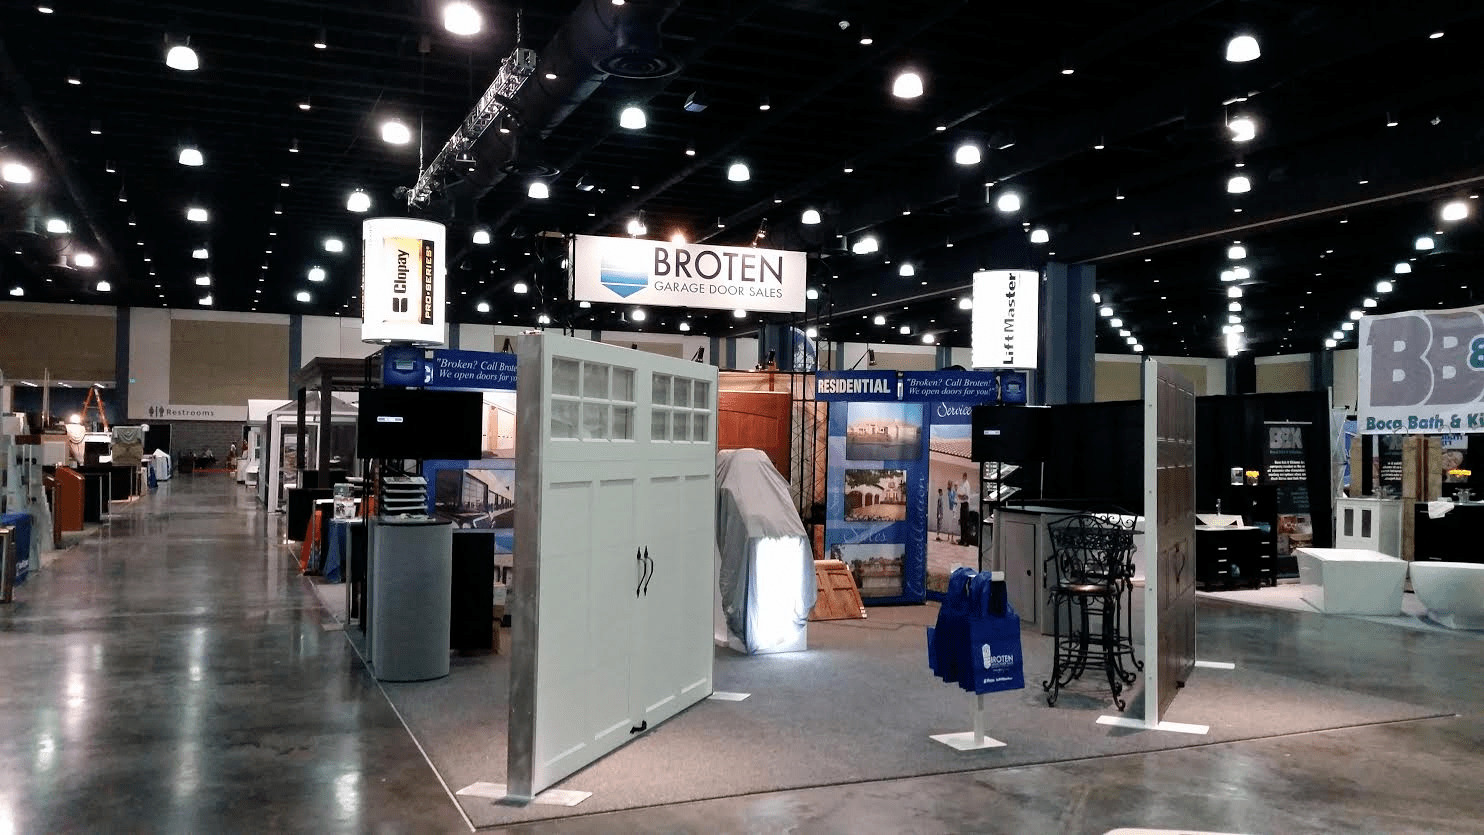 Broten Garage Door Sales display at Florida's Premier Home Improvement Show